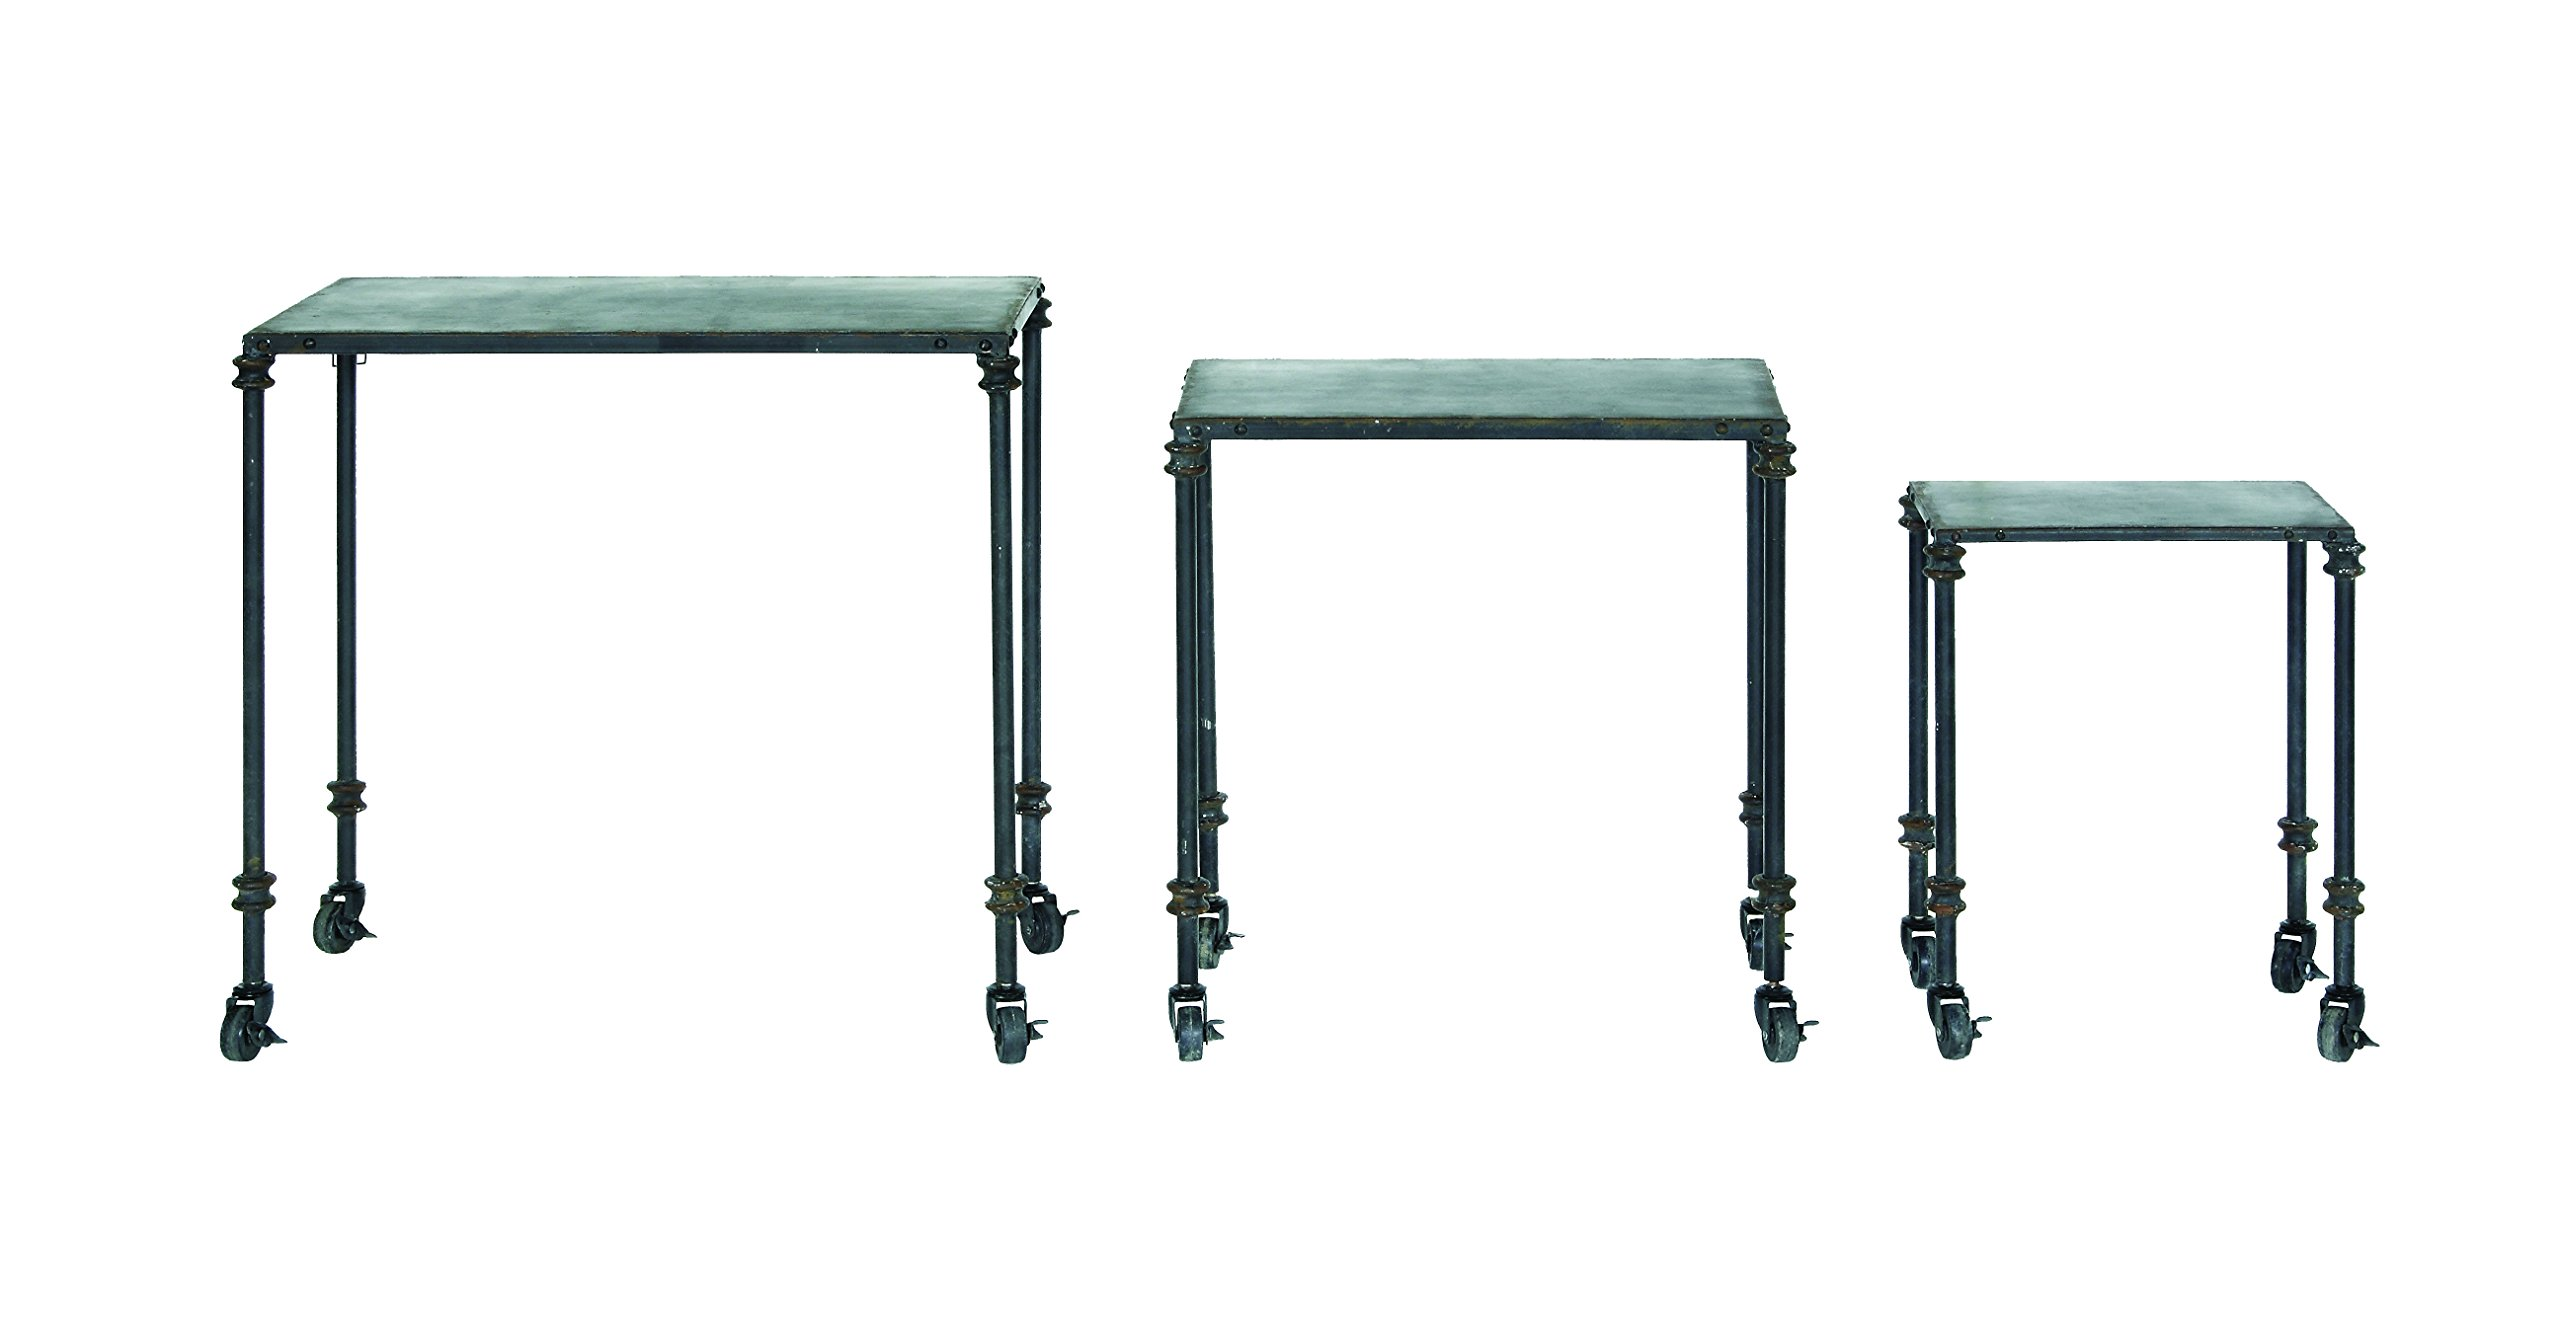 Creative Co-op Black Metal Nesting Table Set with Casters, Silver by Creative Co-op